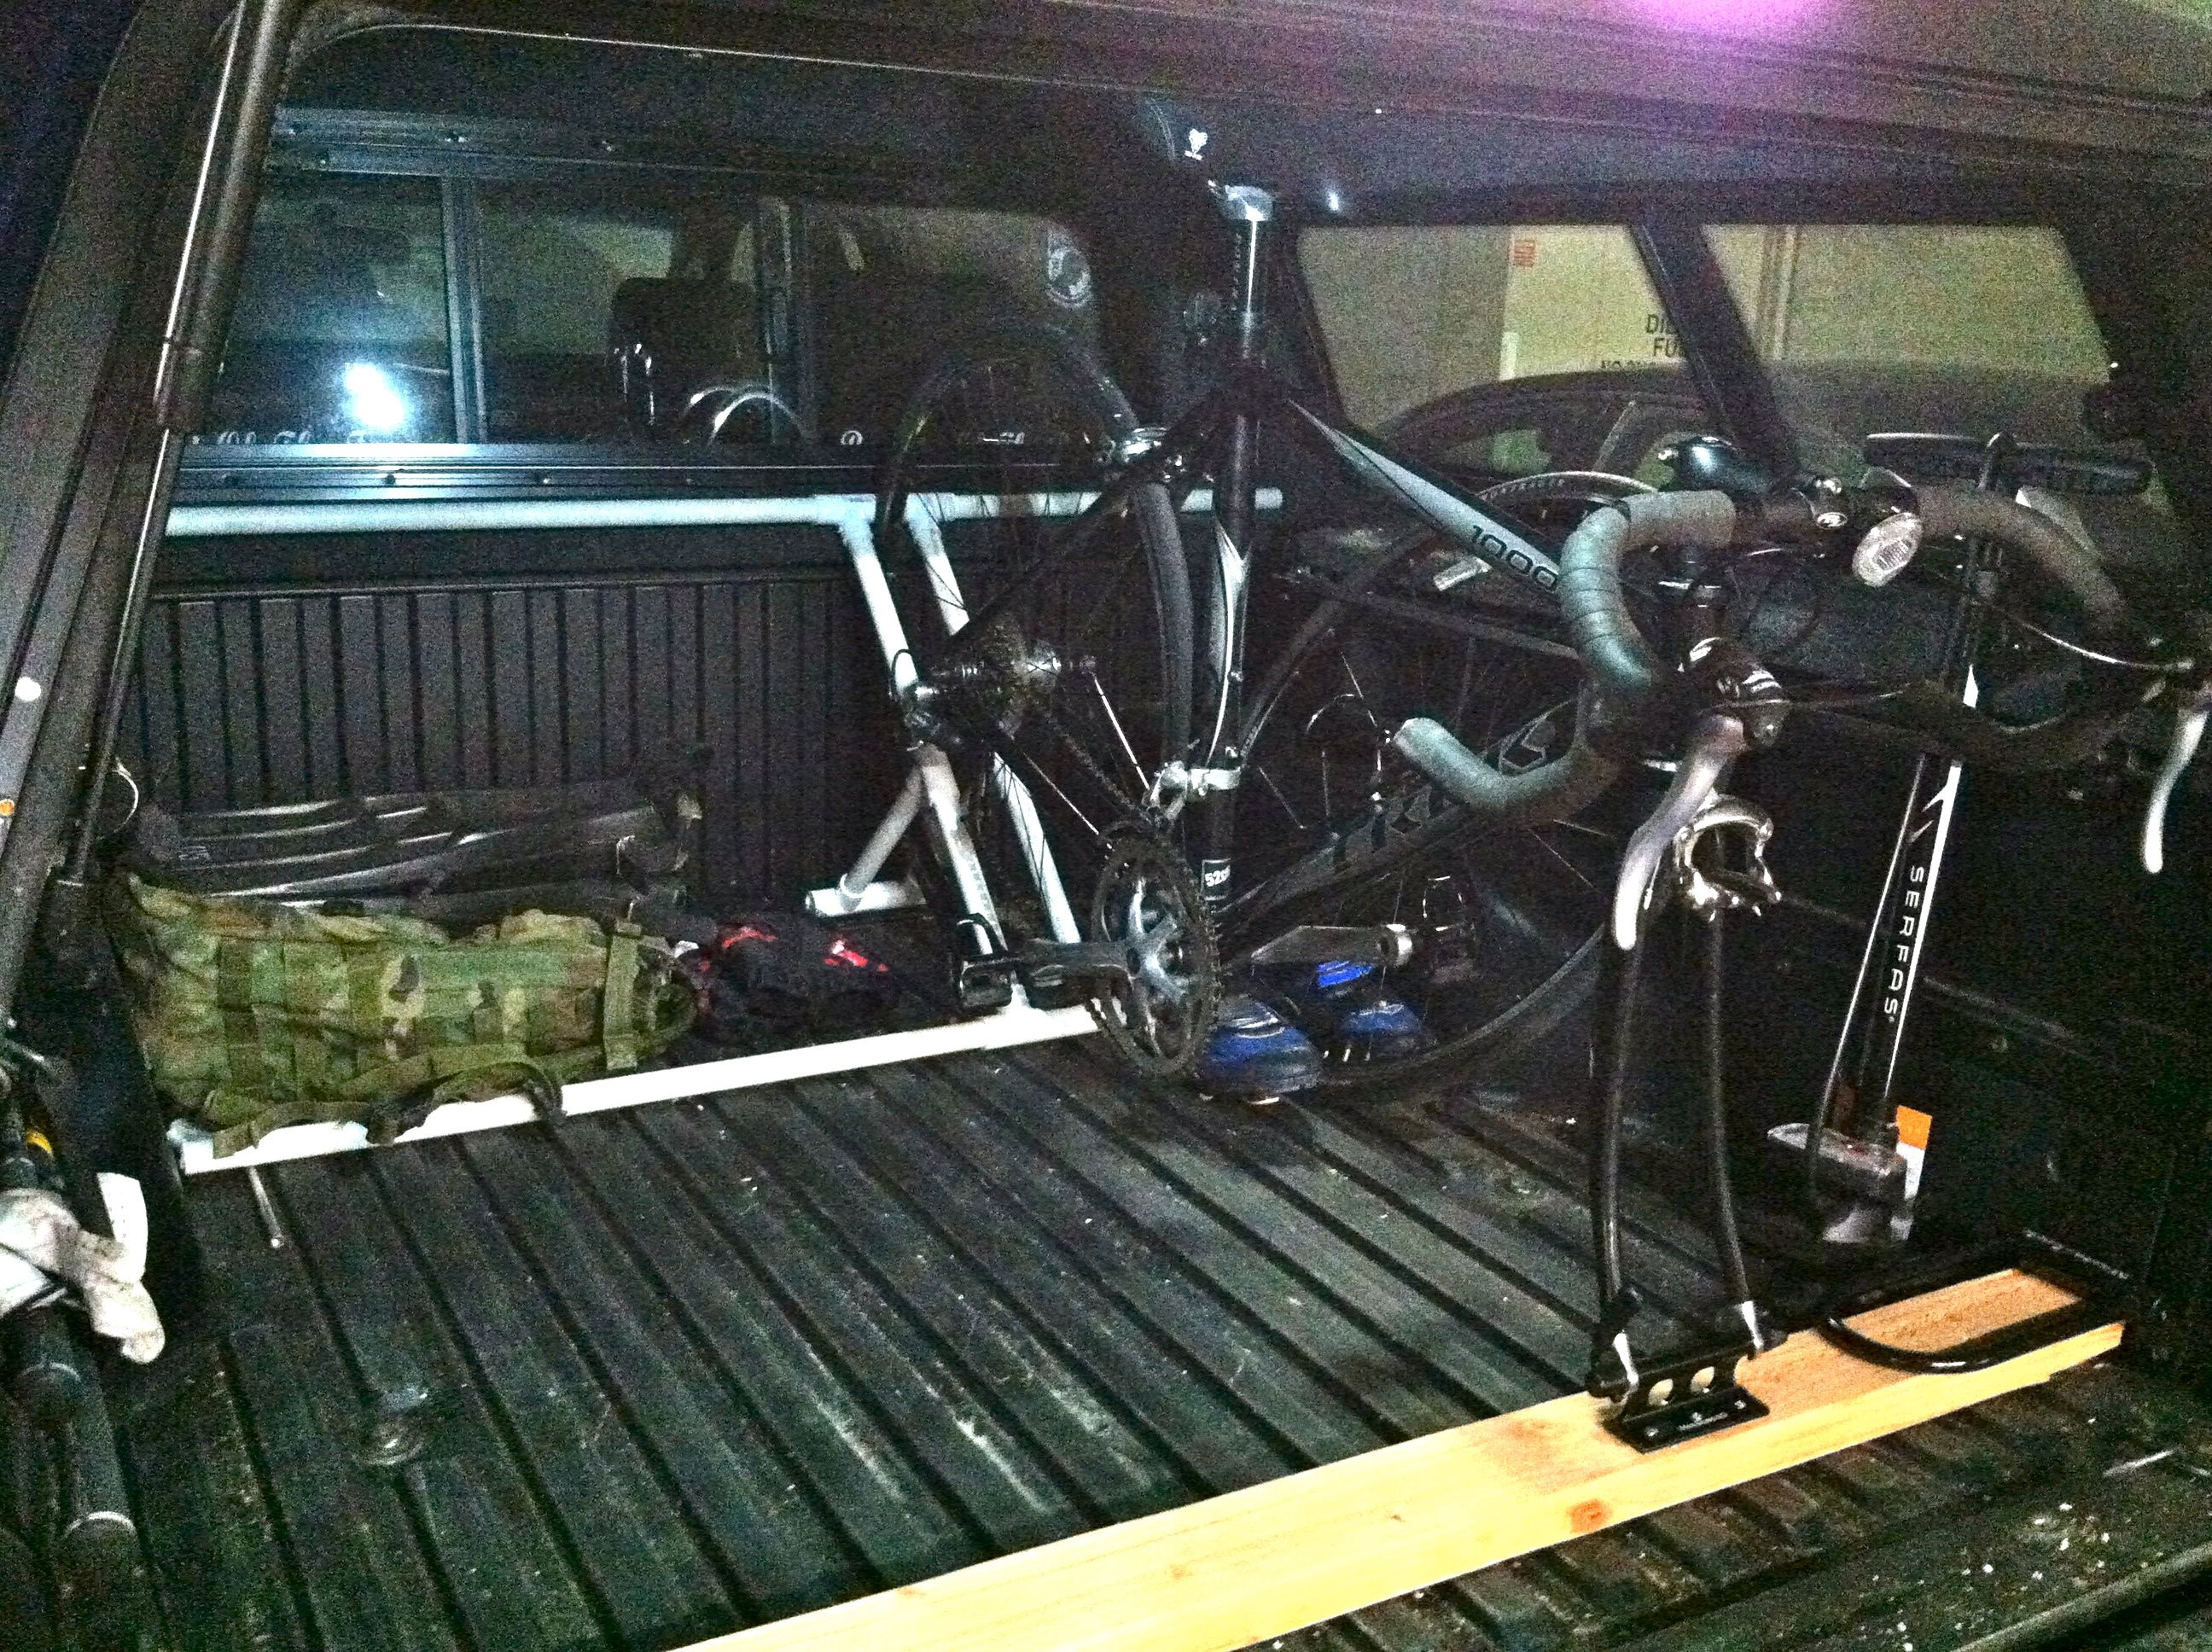 Bike Racks For Trucks With Toppers Uploaded by user Bike rack